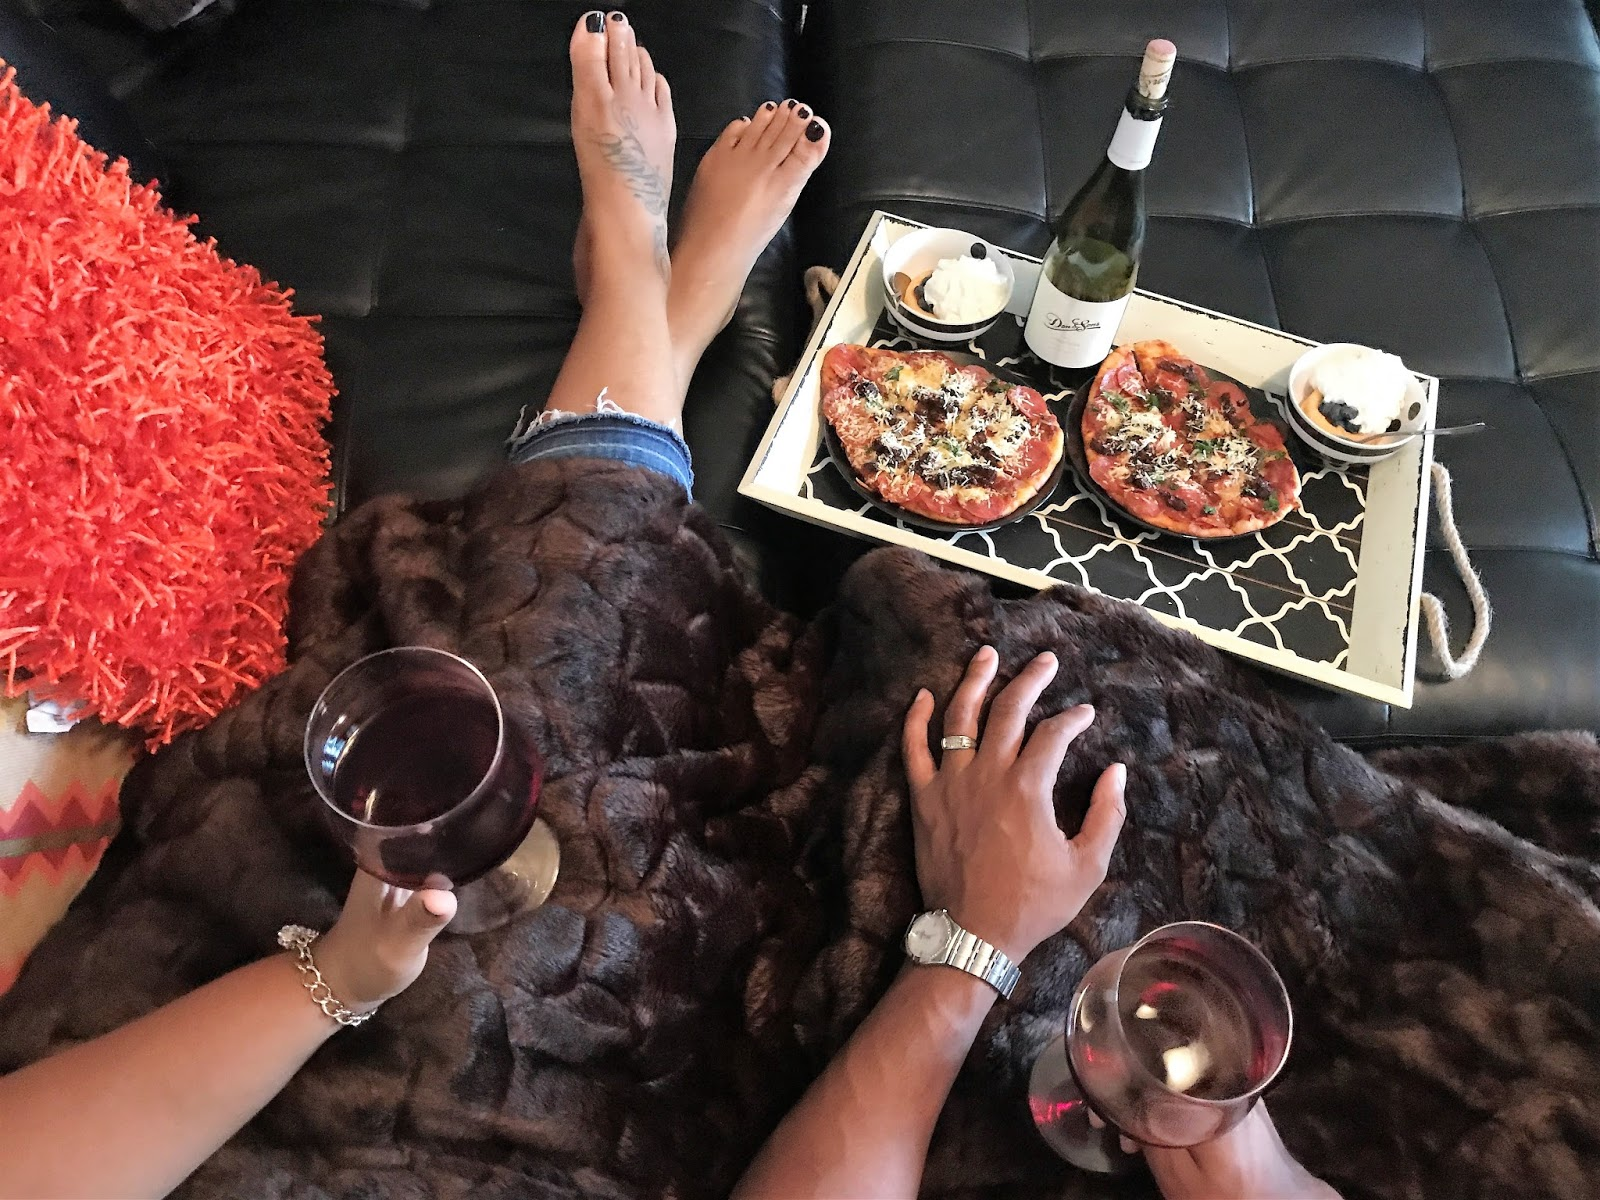 Making Pizza and Movie night ideas at home : weekend Bits and Favorites